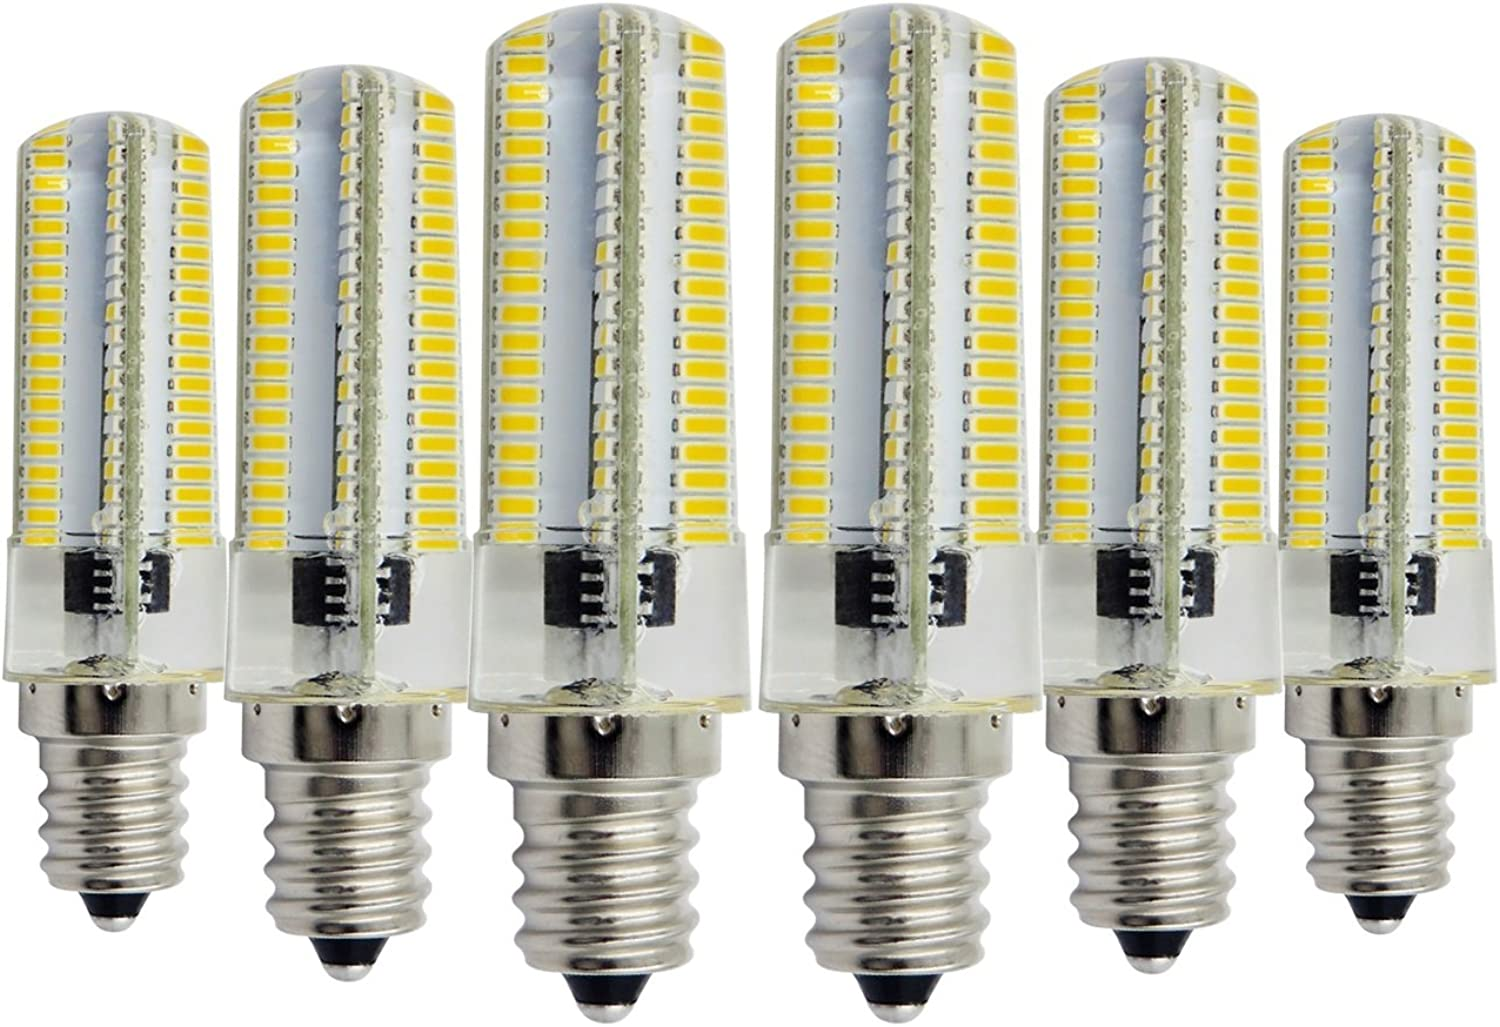 LL 110V 6 Watts E14 Dimmable 3014 SMD LED Light Warm White Cool White 40W50W Halogen Replacement Ceiling Lamp Light in Living Room Kitchen Bath Room (Pack of 6) (Size   Cold White)